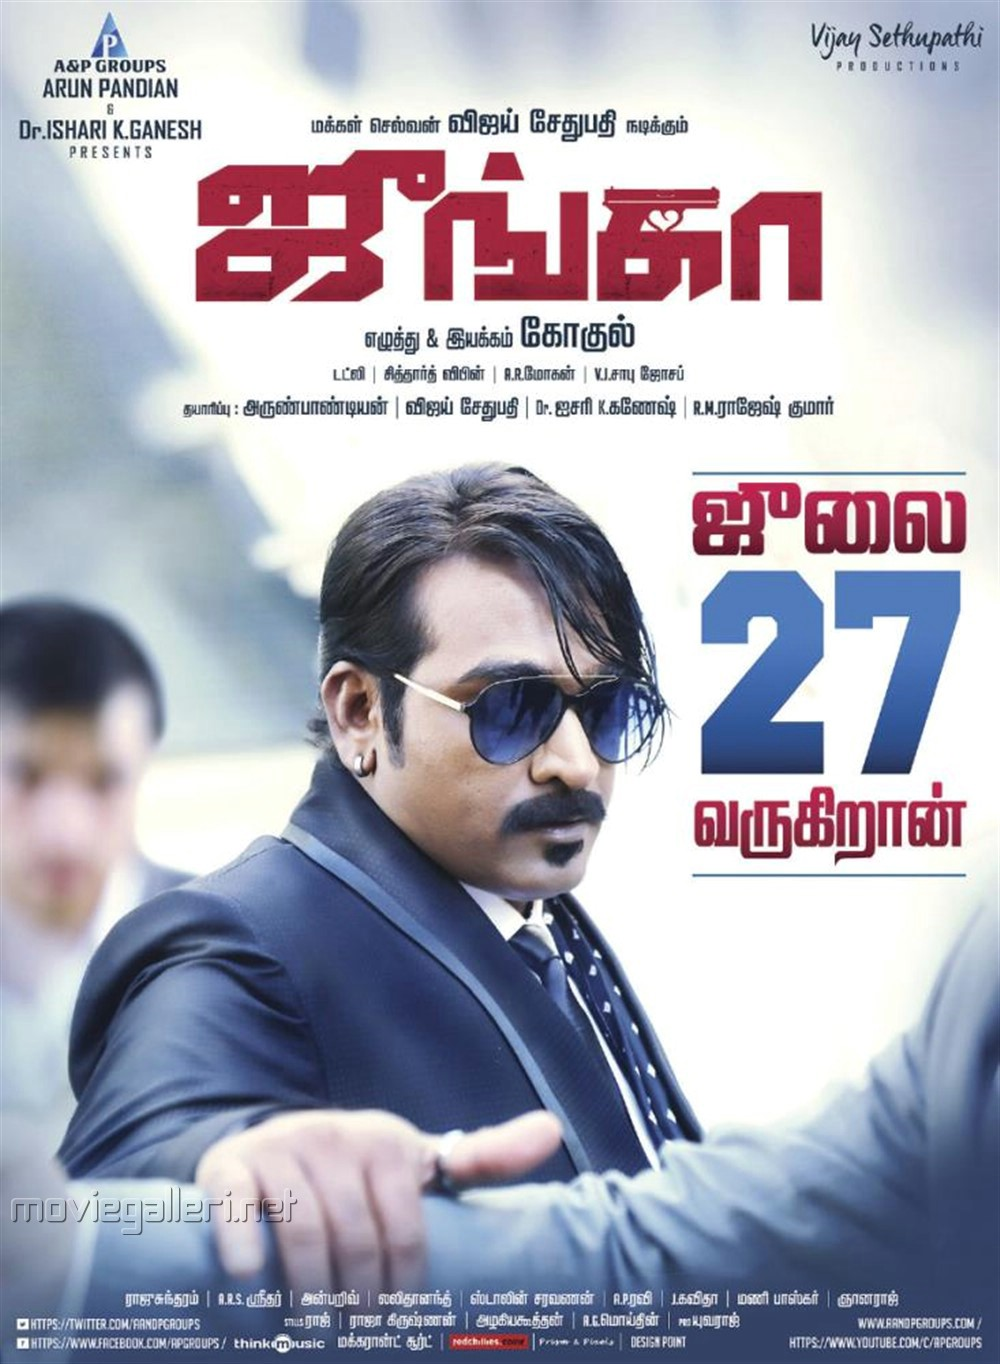 Actor Vijay Sethupathi Junga Movie Release Posters